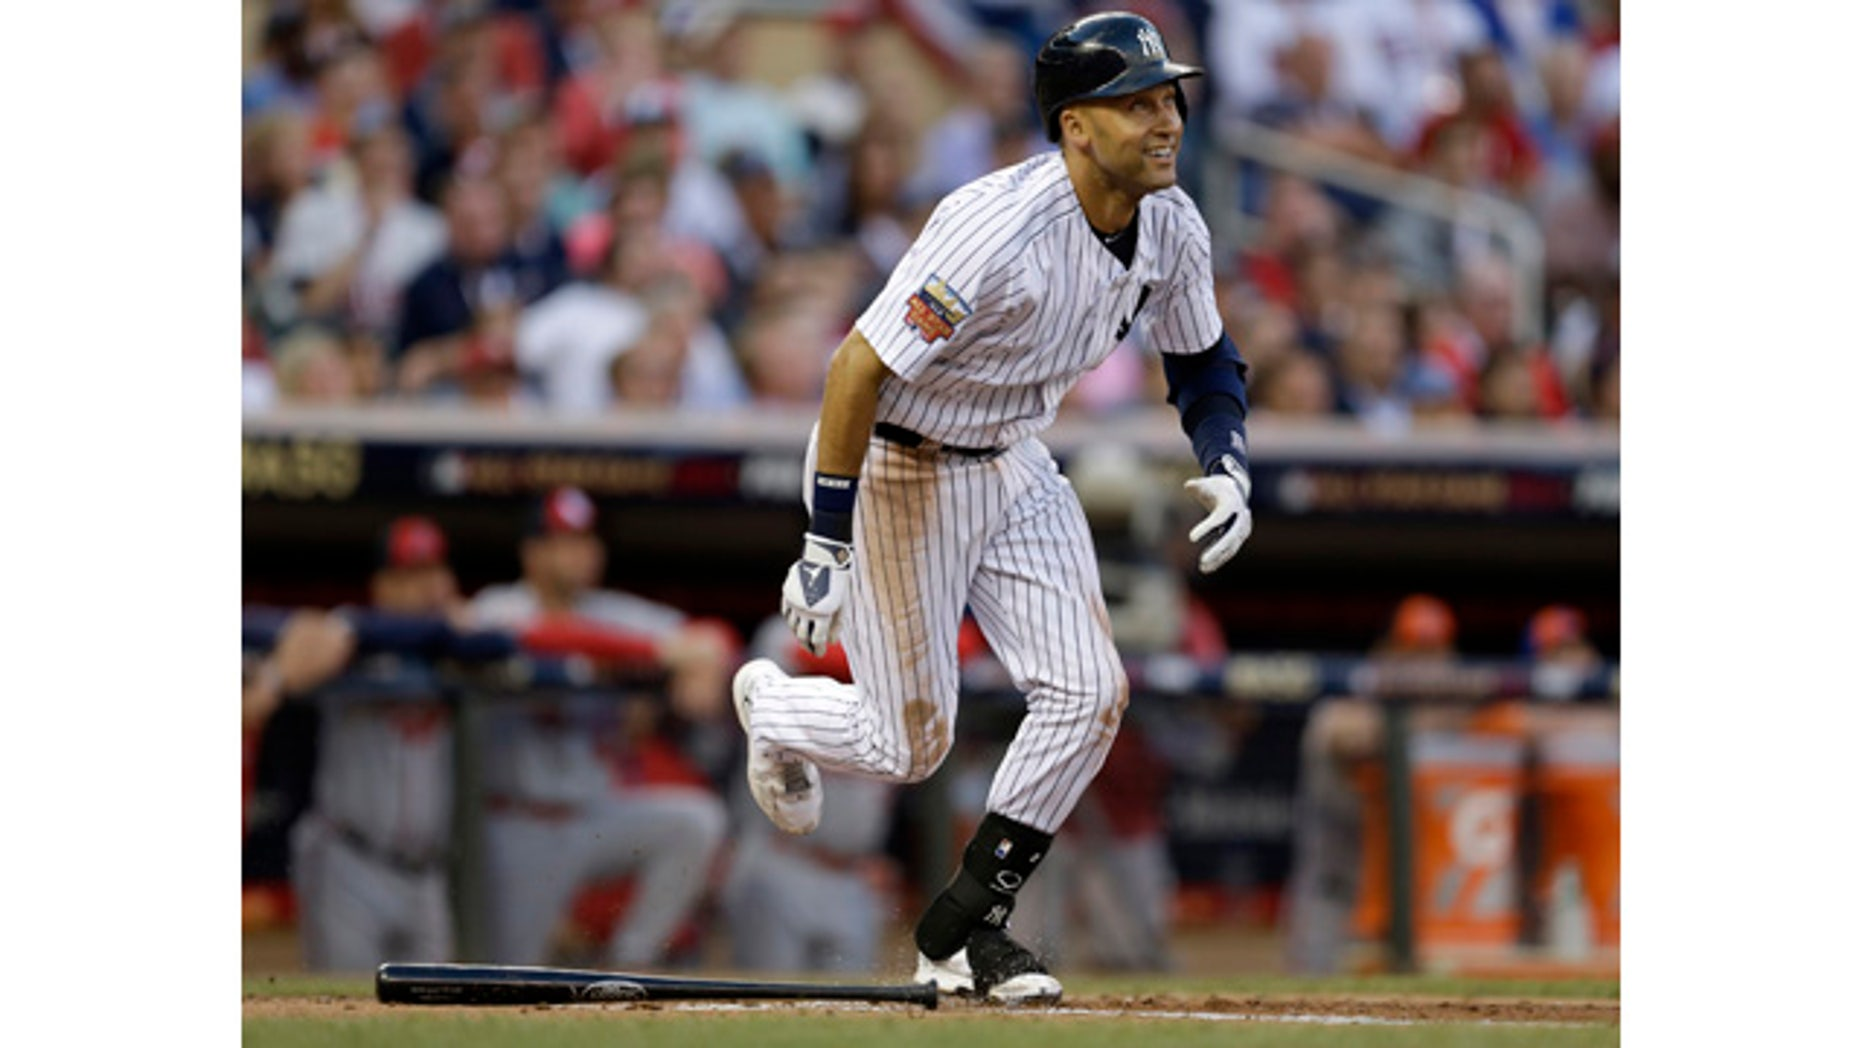 July 15, 2014: American League shortstop Derek Jeter of the New York Yankees singles during the third inning of the All-Star Game in Minneapolis. (AP Photo/Jeff Roberson)